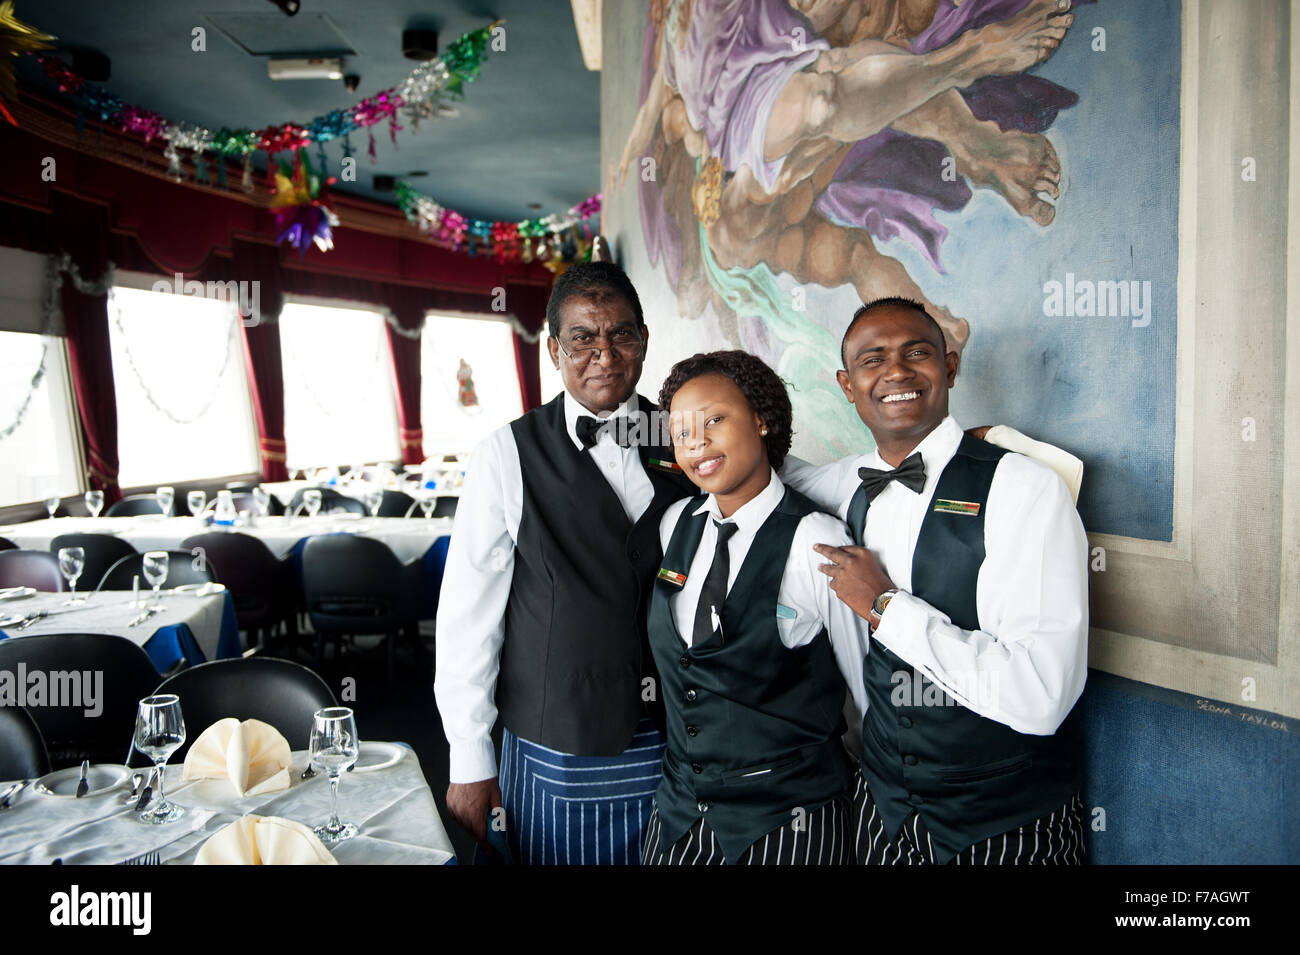 Waiters at the Roma Revolving Restaurant in Durban South Africa. - Stock Image